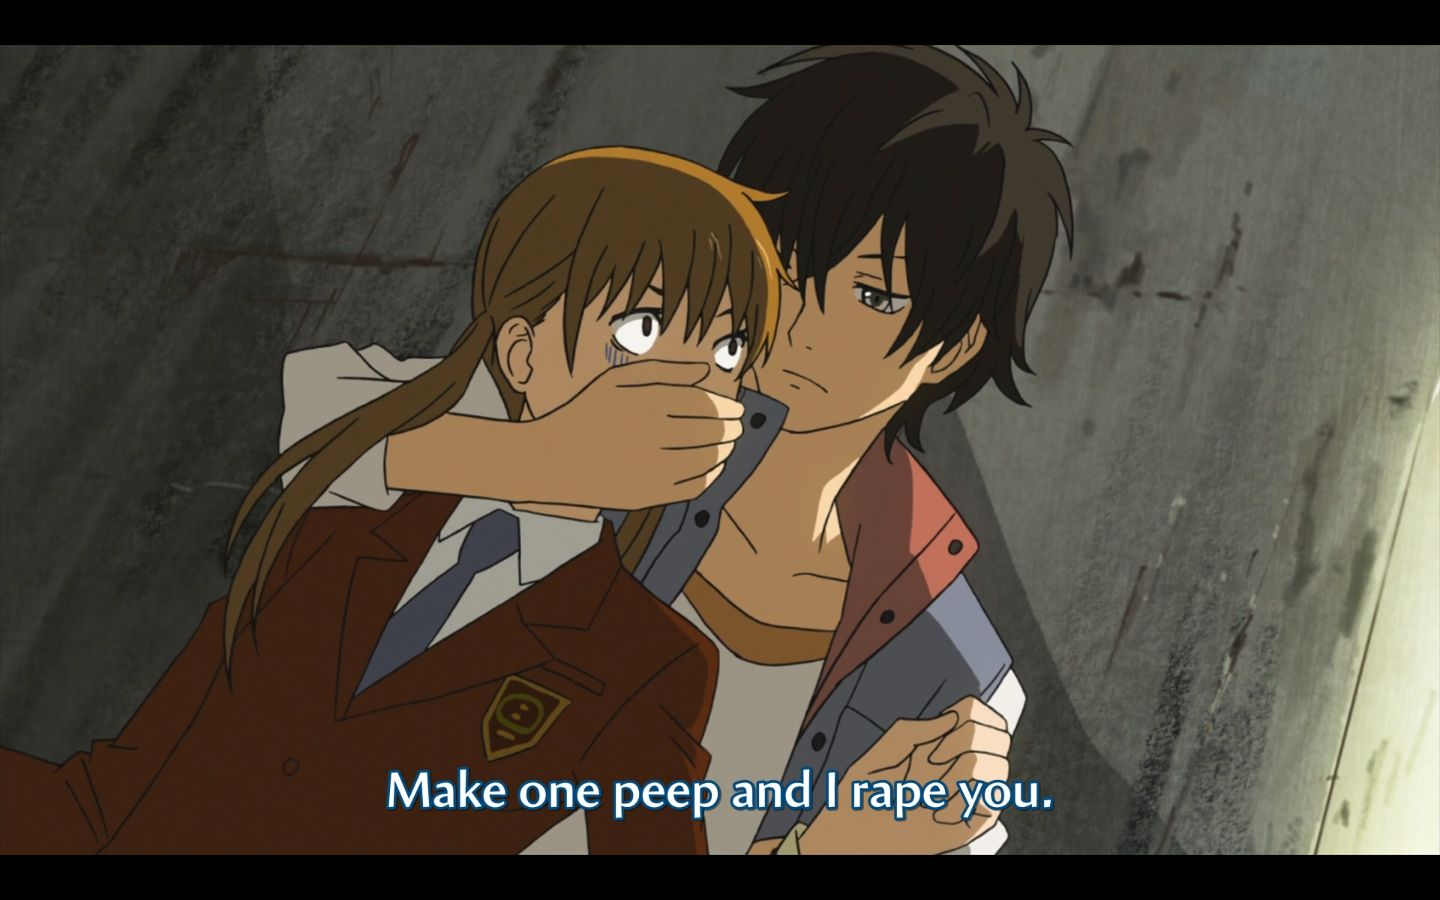 say one peep and i rape you - cerca con google | idk | pinterest | anime